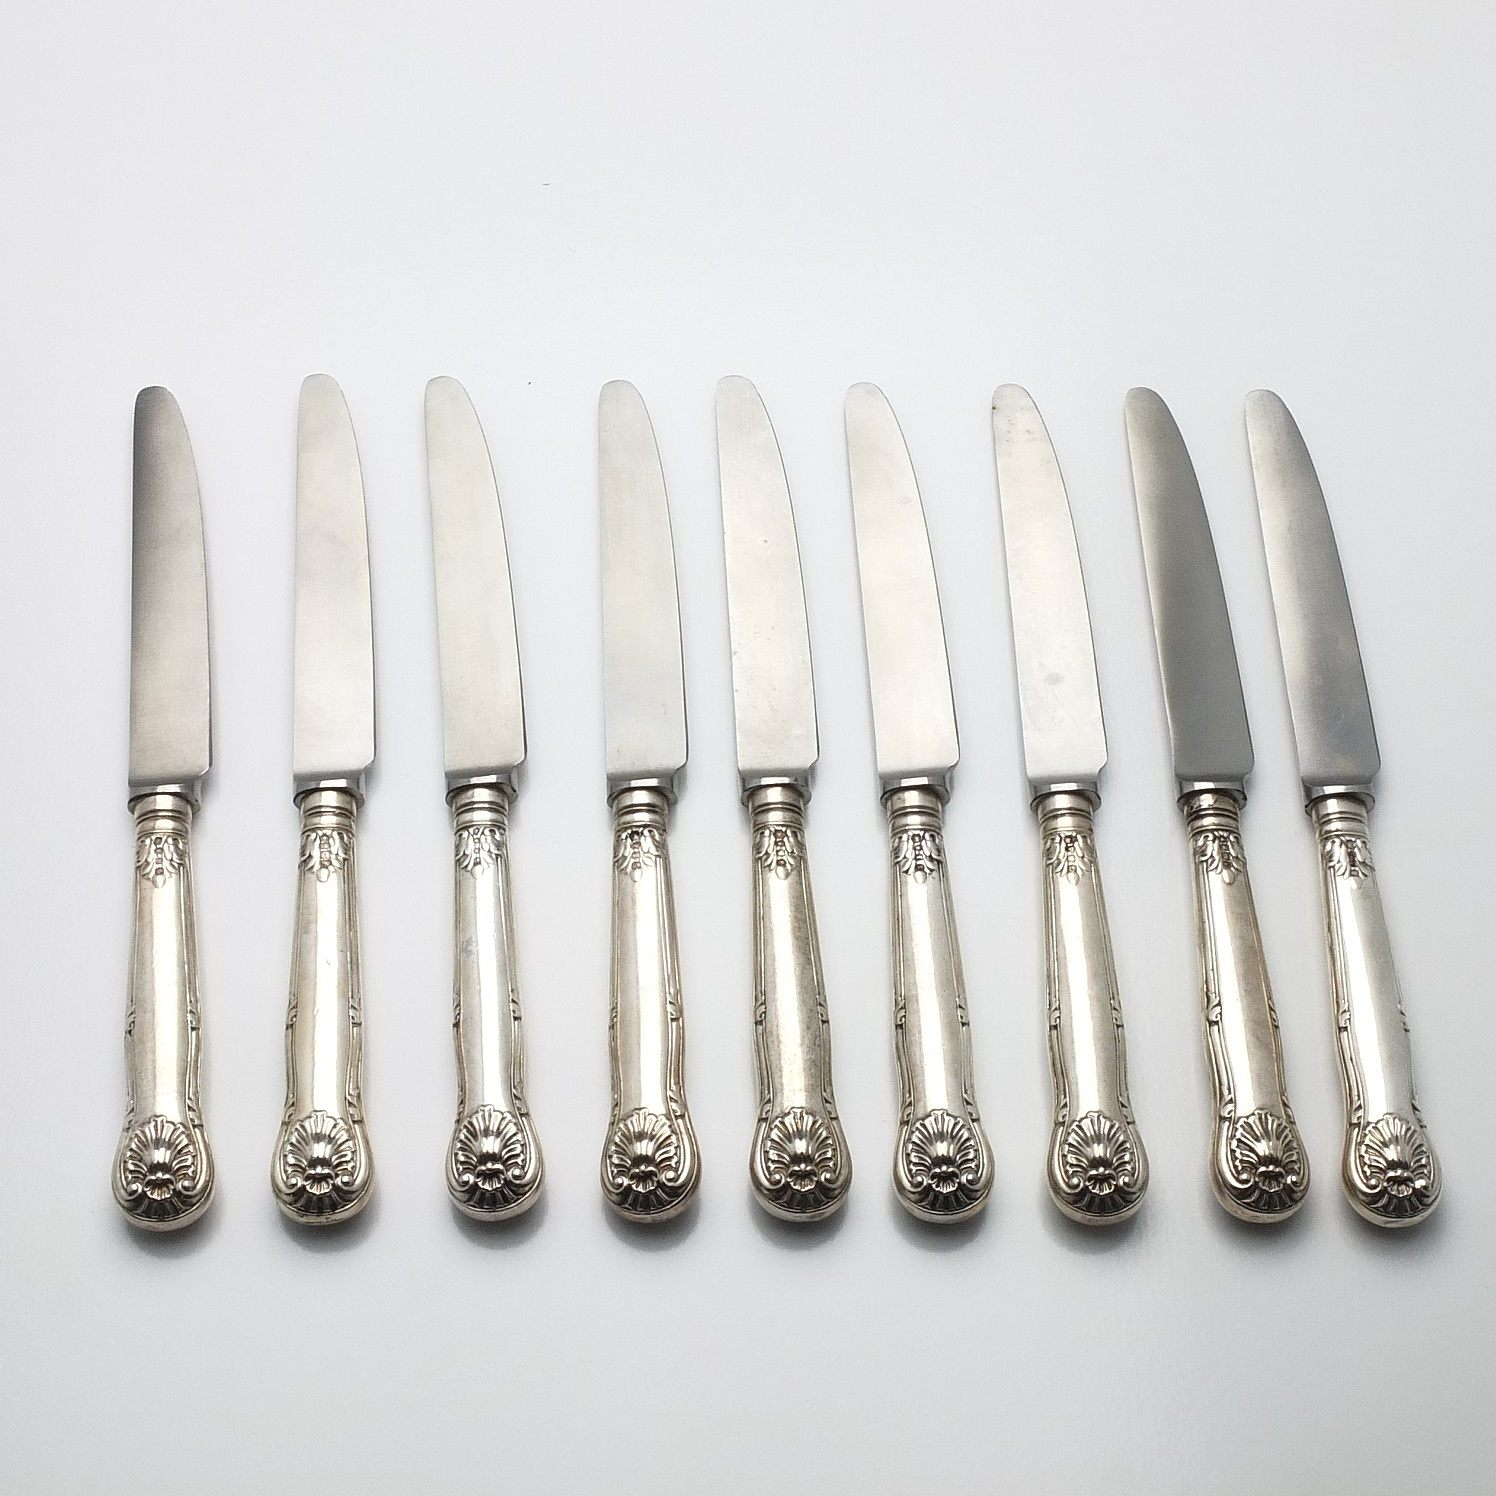 'Nine Victorian Sterling Silver Handled Kings Pattern Entree Knives Chawner & Co London'